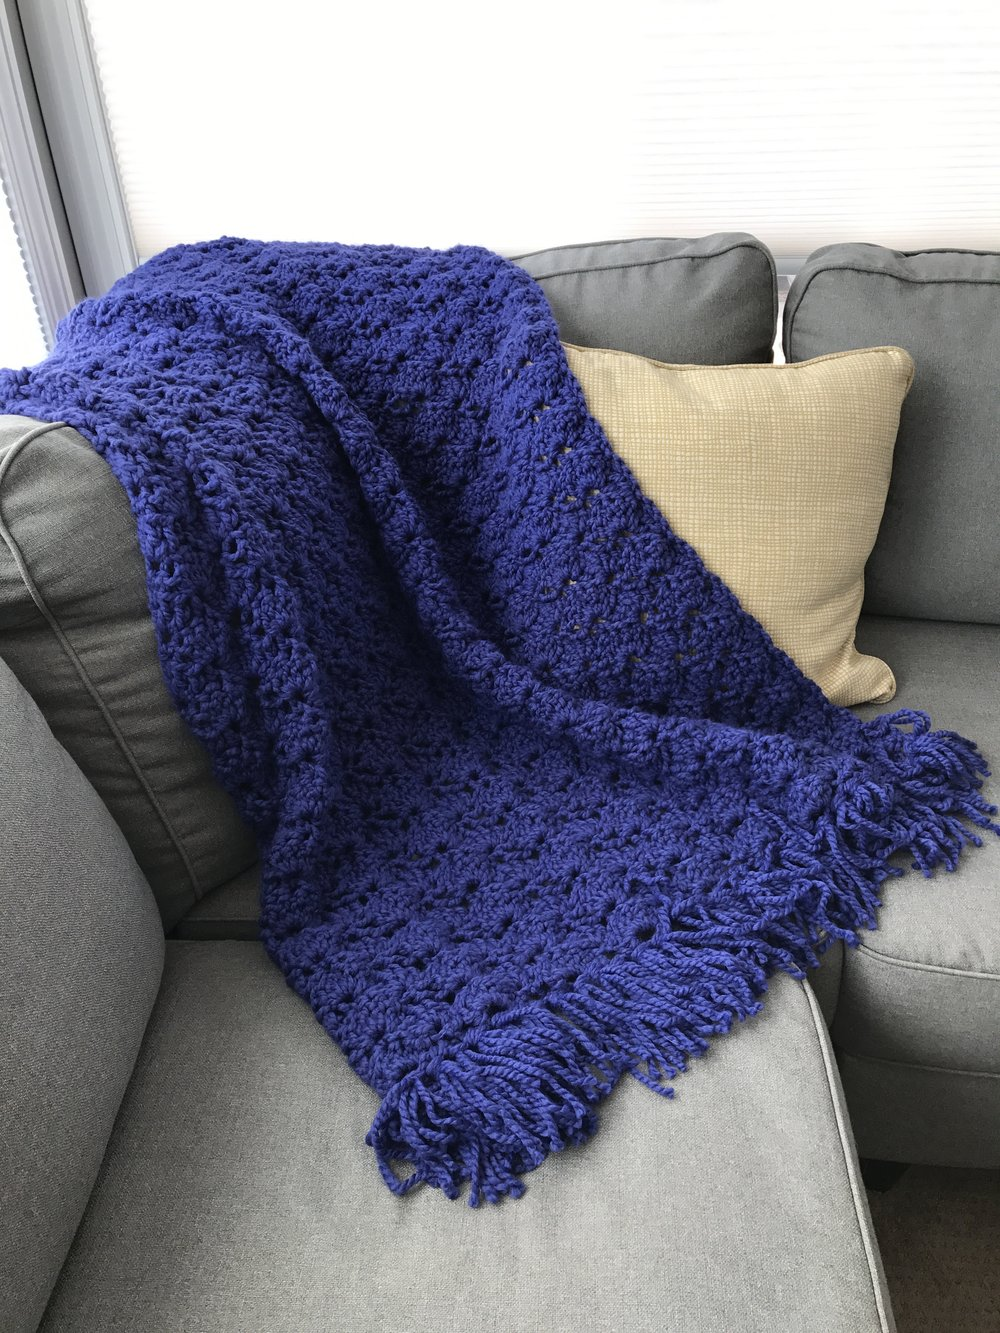 darling be brave - eleanor throw blanket pattern